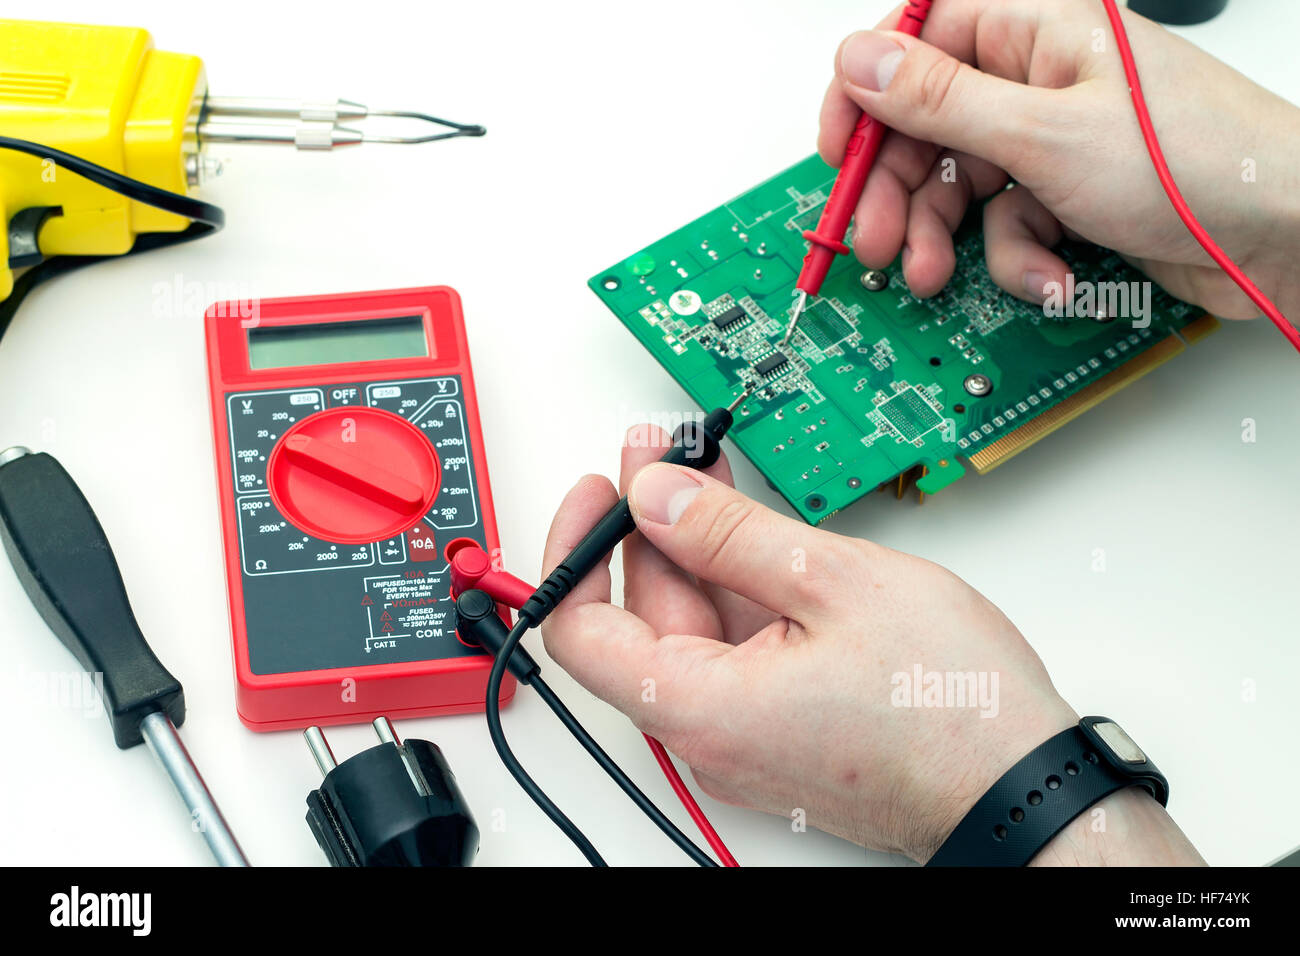 Electrician Part Stock Photos Images Alamy Glass On The Electronic Schematic Diagramideal Technology Background Checks Hardware With A Multimeter In Workshop Image